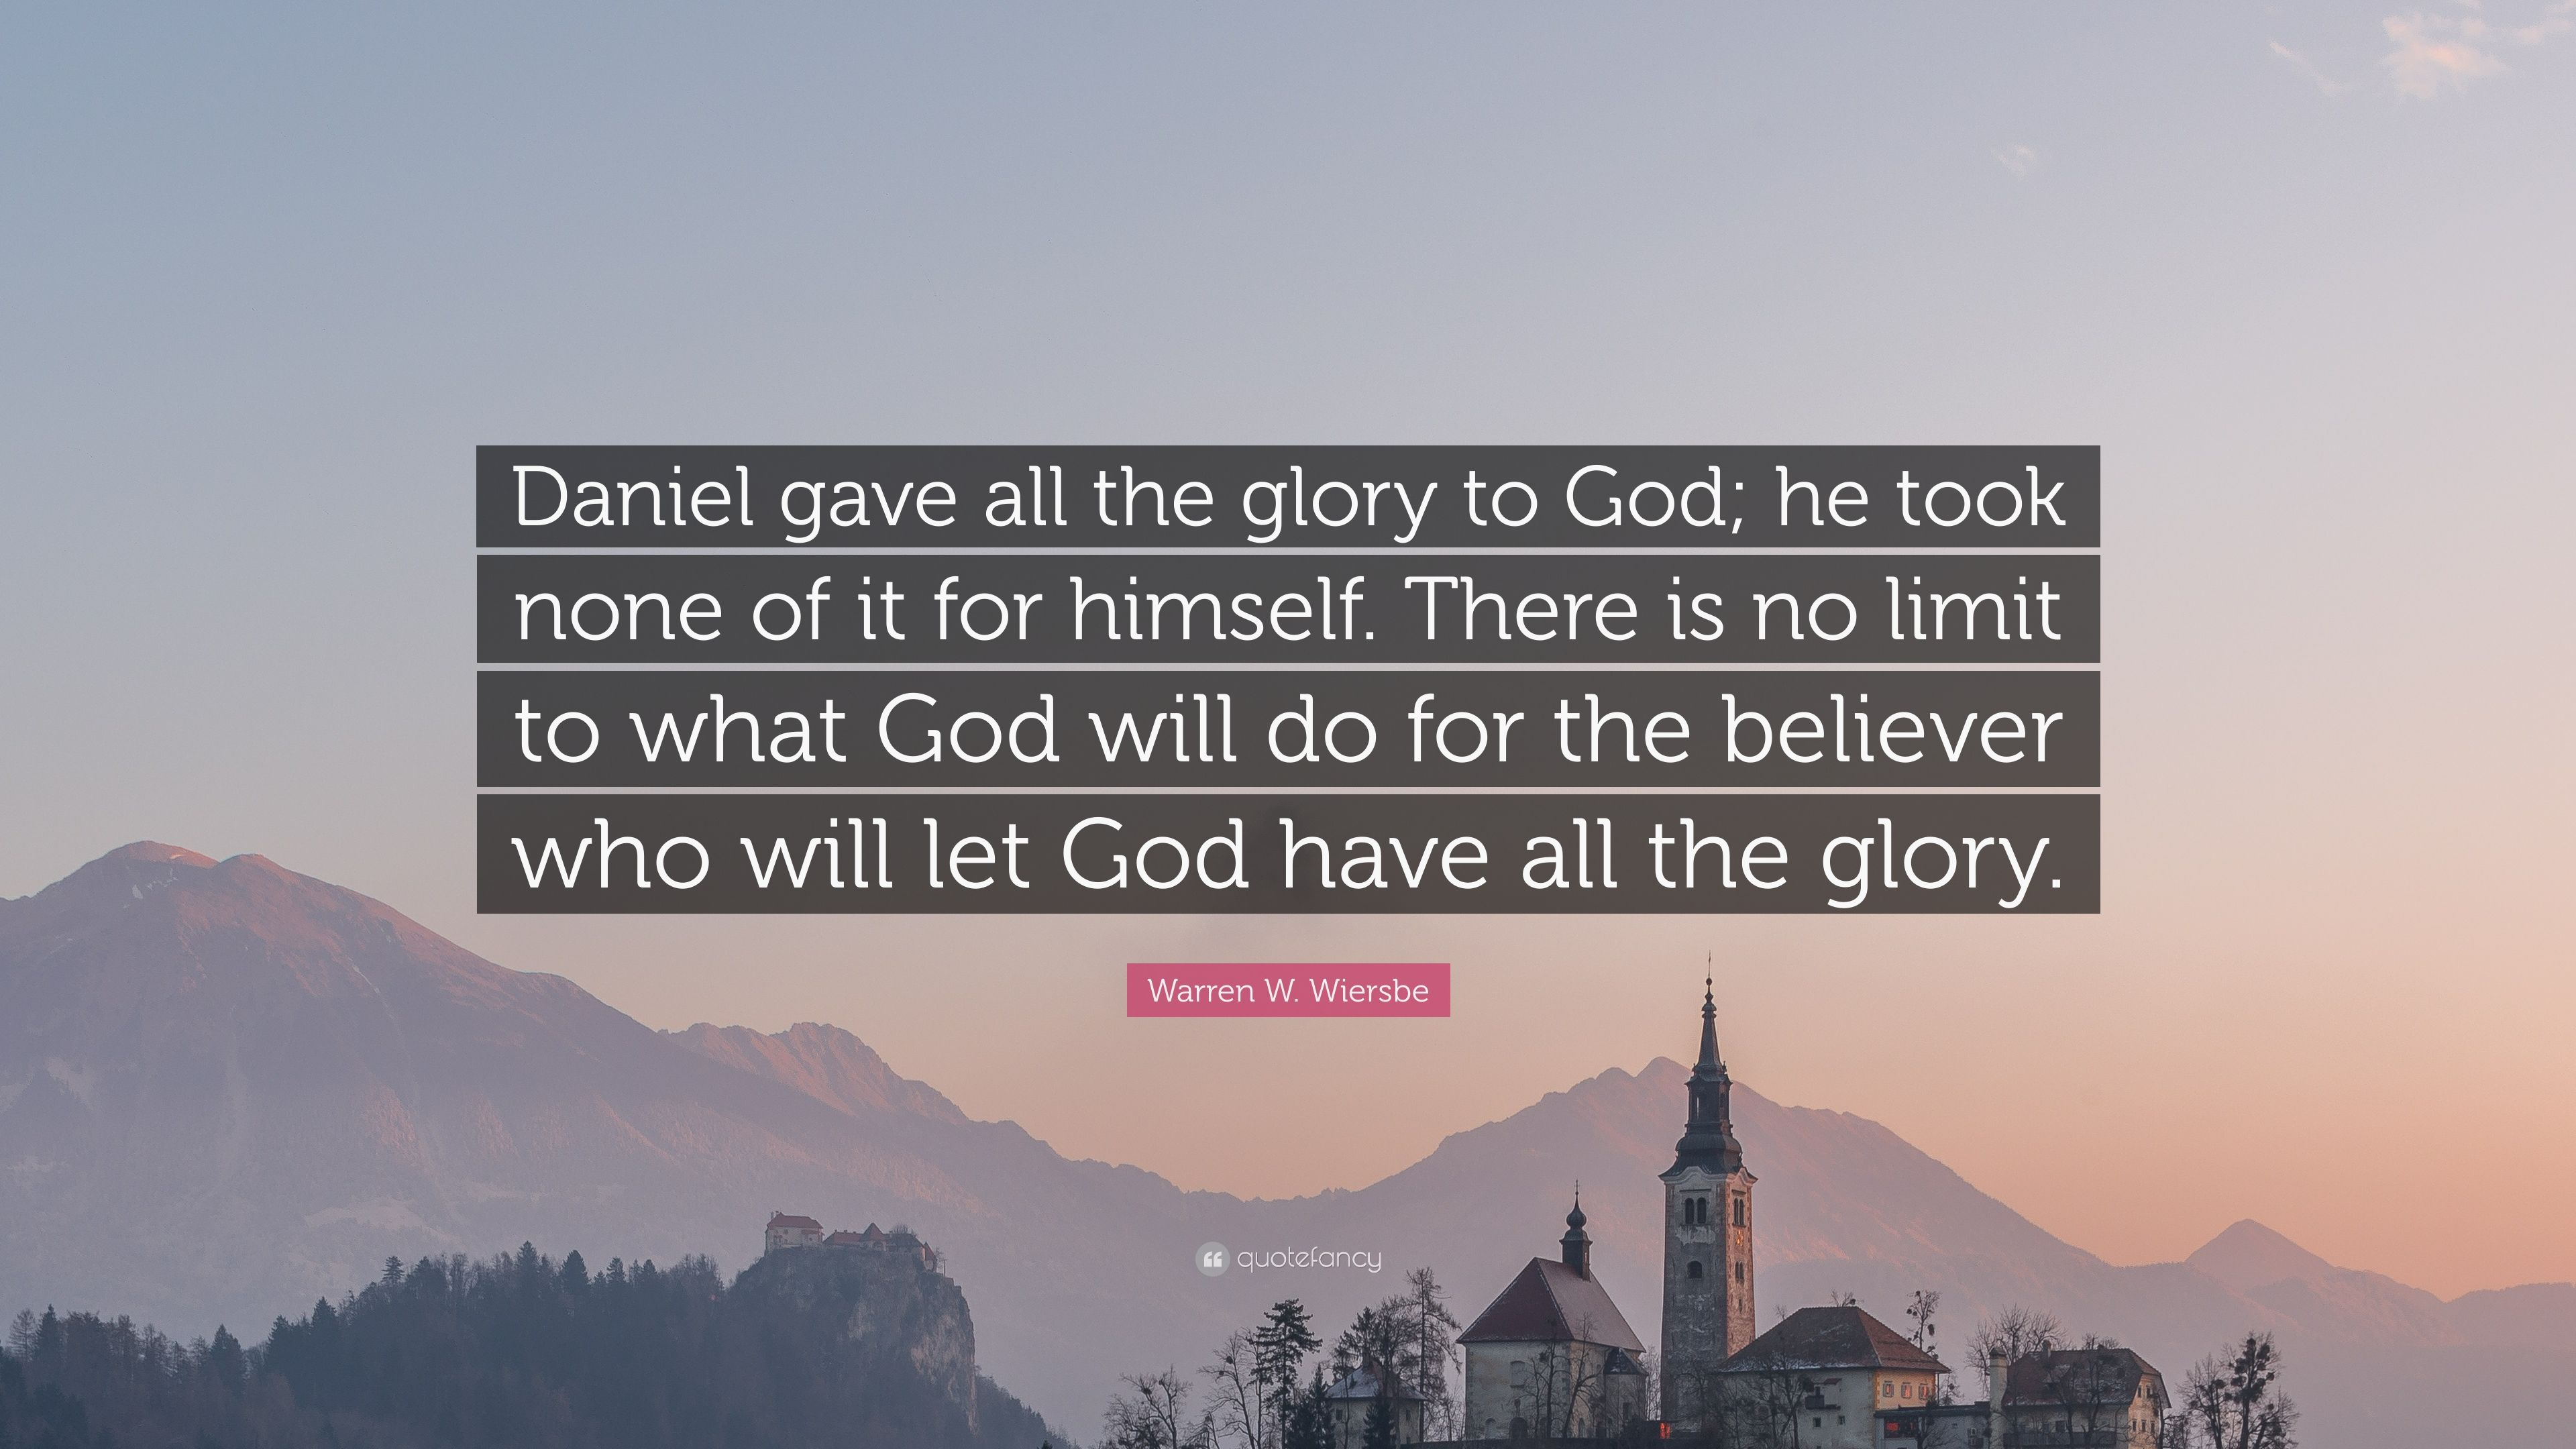 Warren W Wiersbe Quote Daniel Gave All The Glory To God He Took